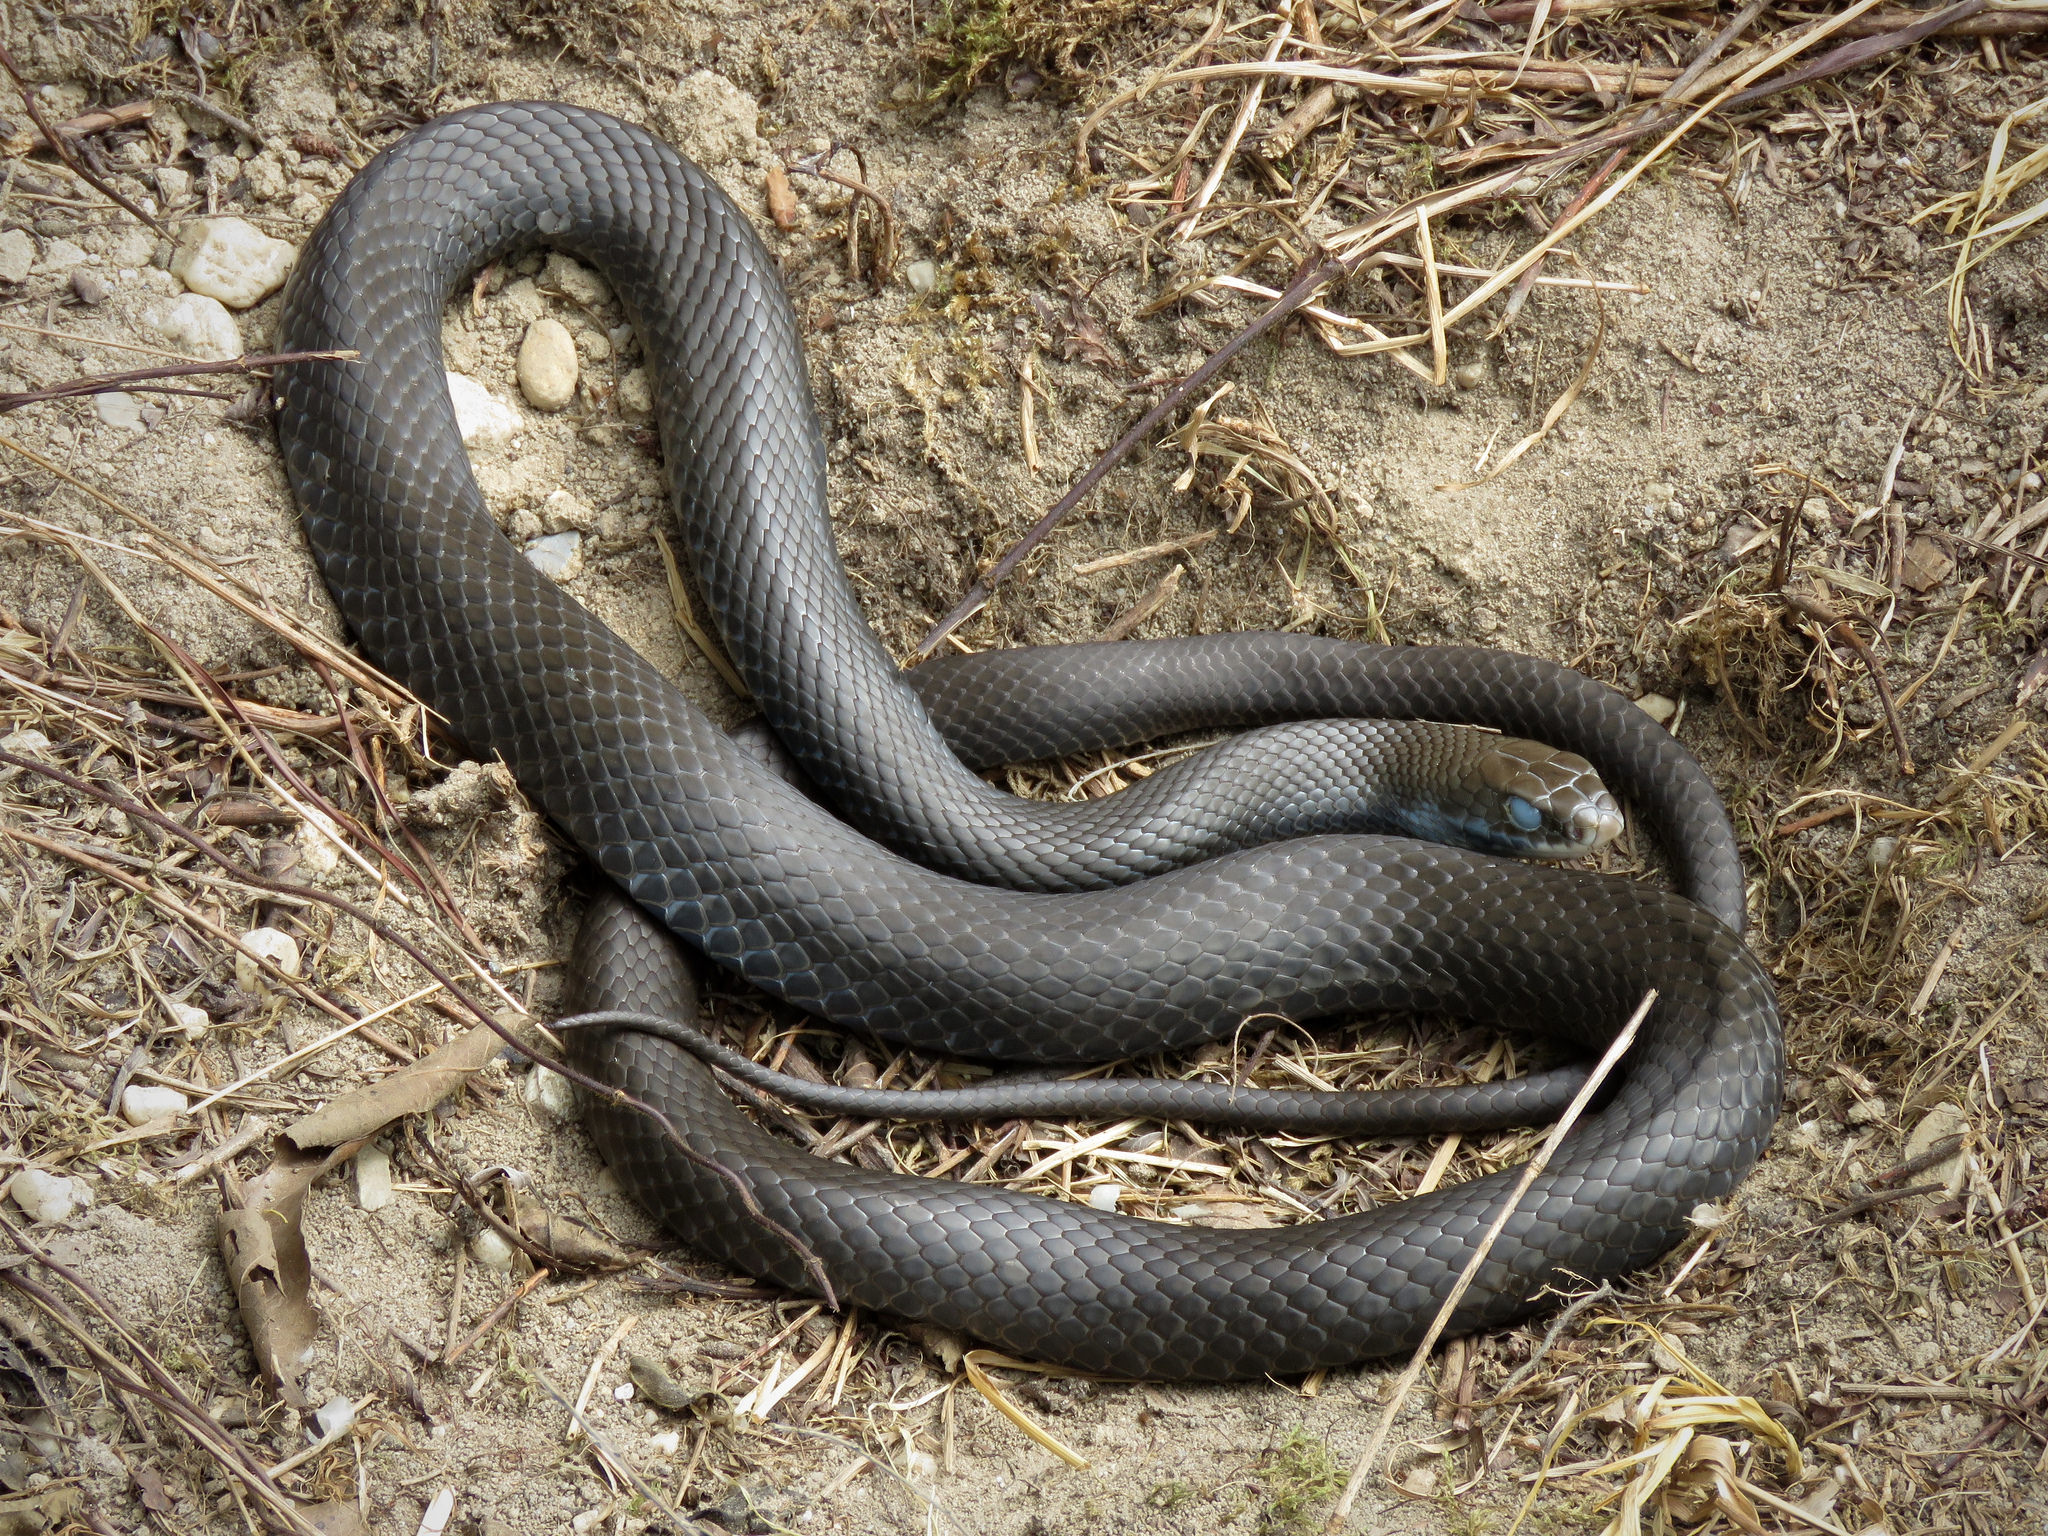 A Northern Black Racer